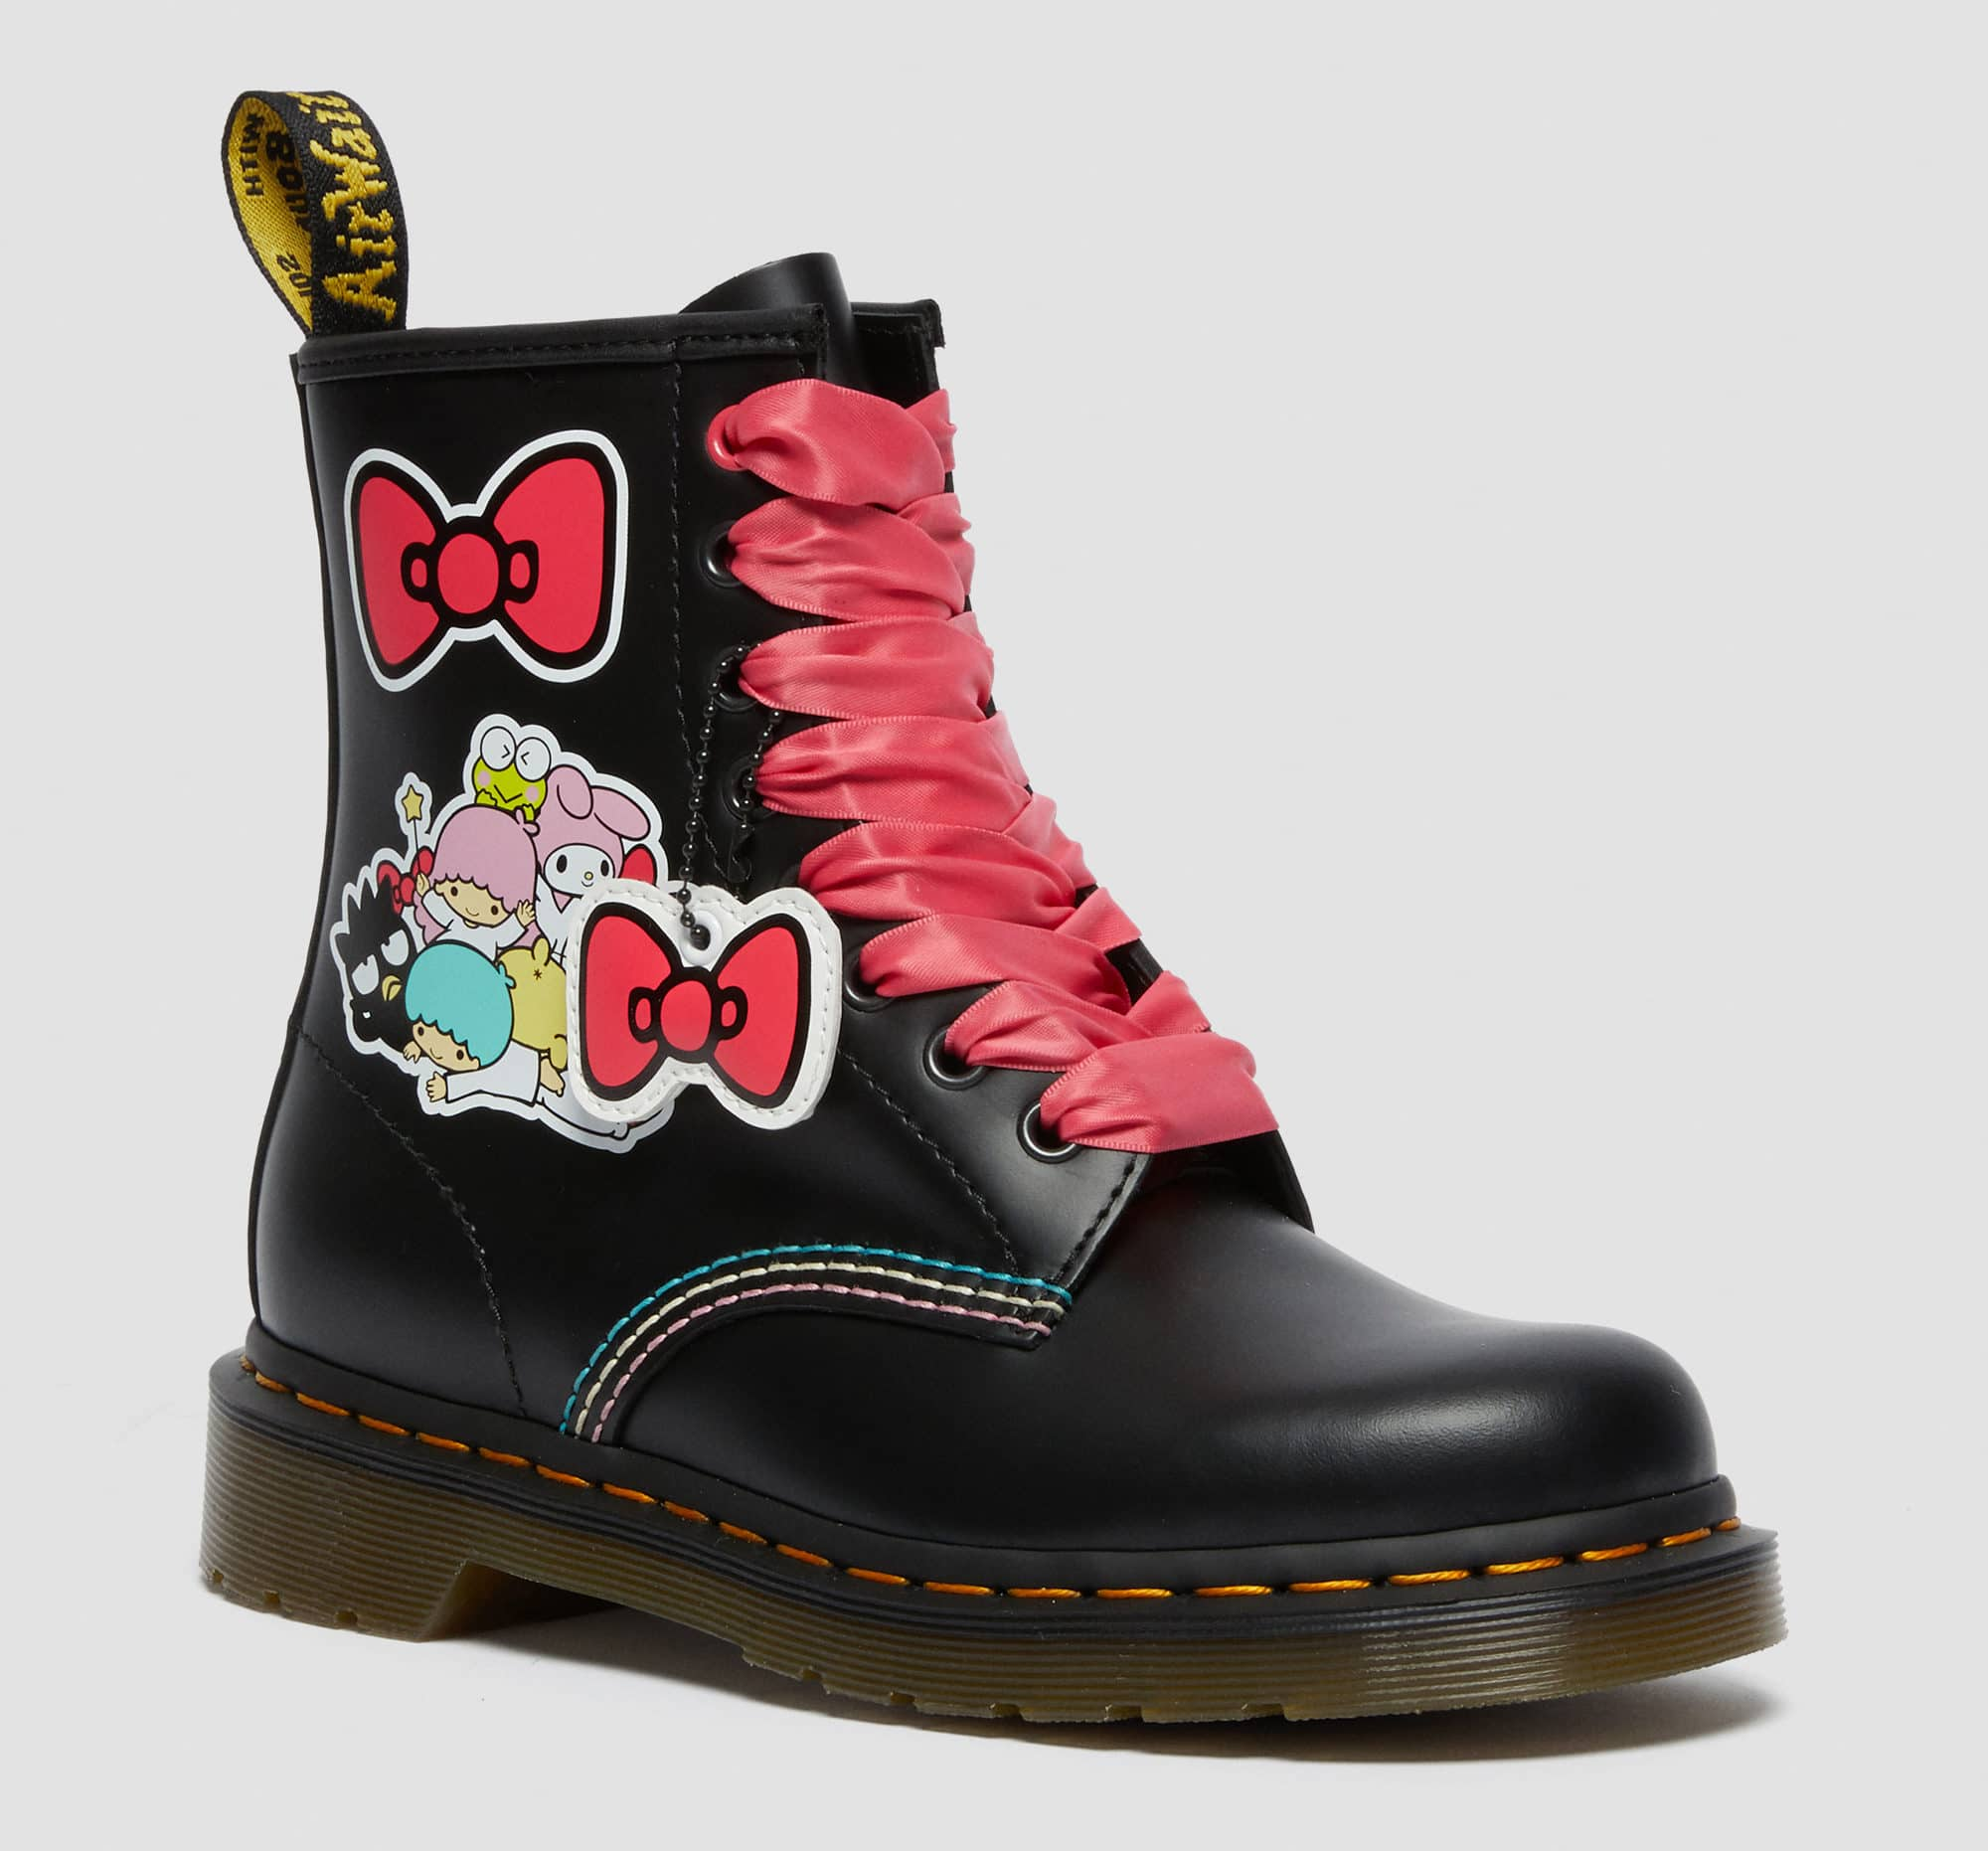 Dr. Martens boots get a cute makeover from Hello Kitty and Friends 9